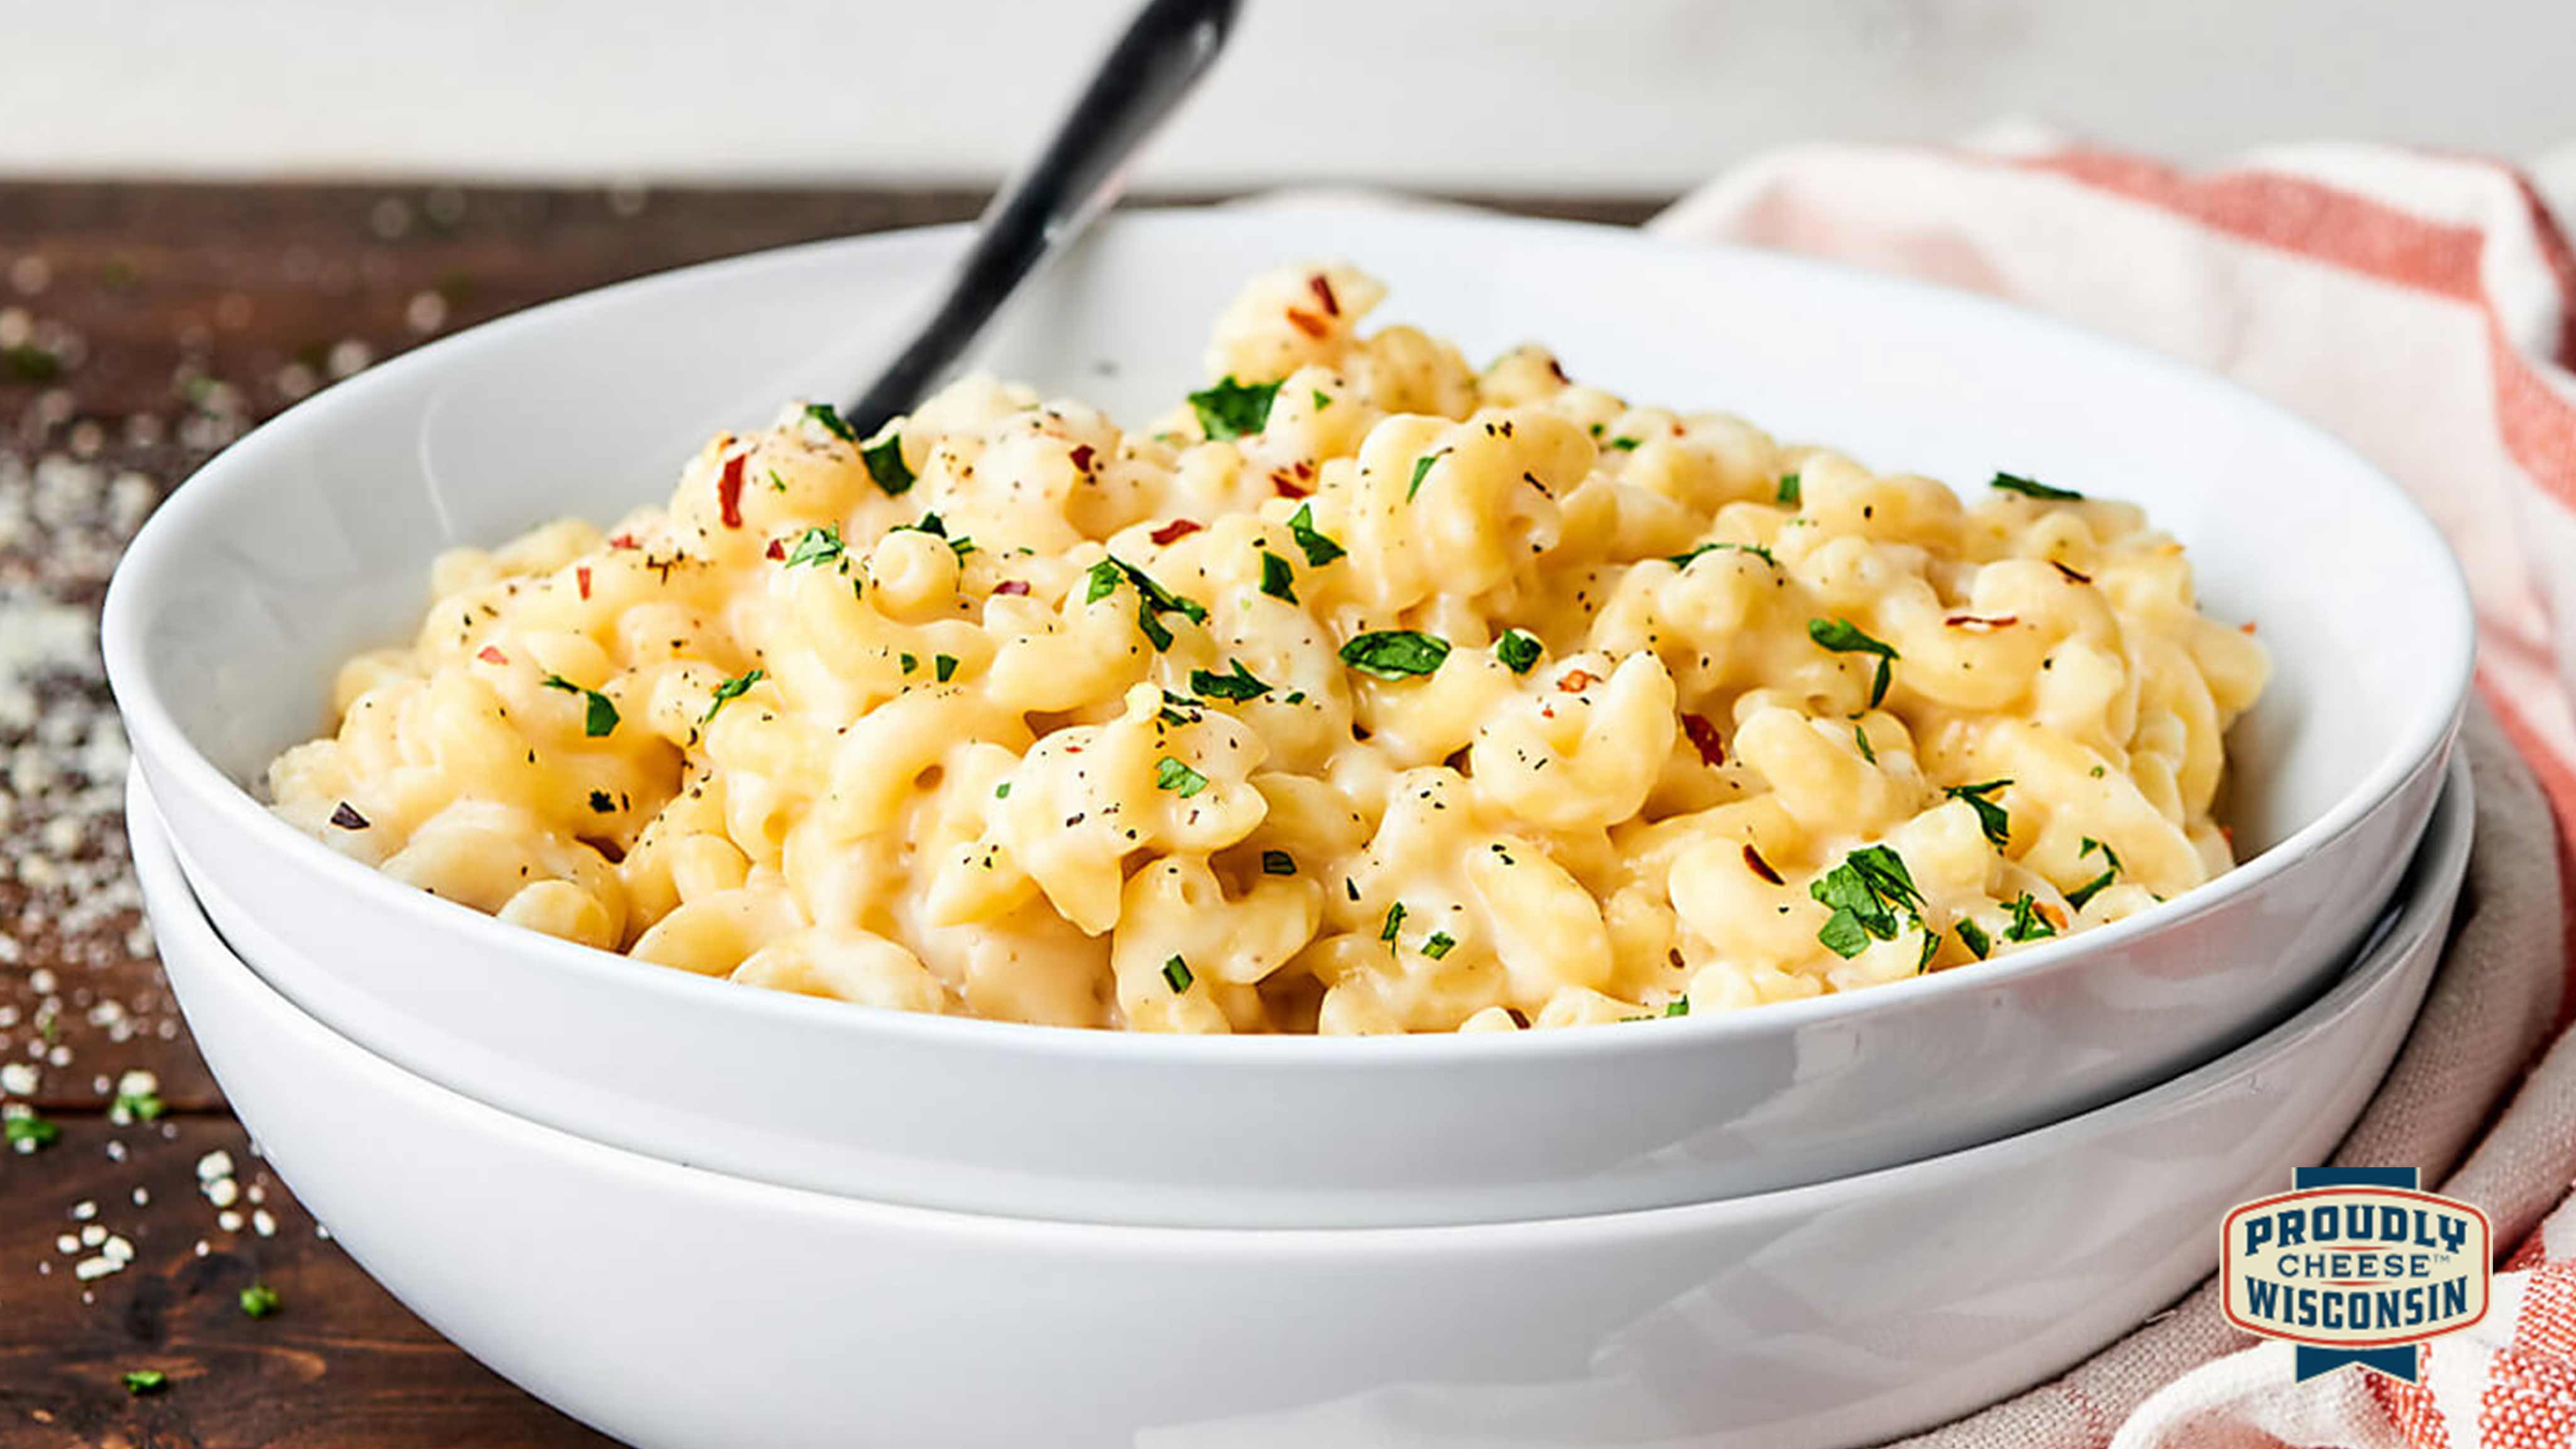 Image for Recipe Three-Cheese Wisconsin Mac and Cheese